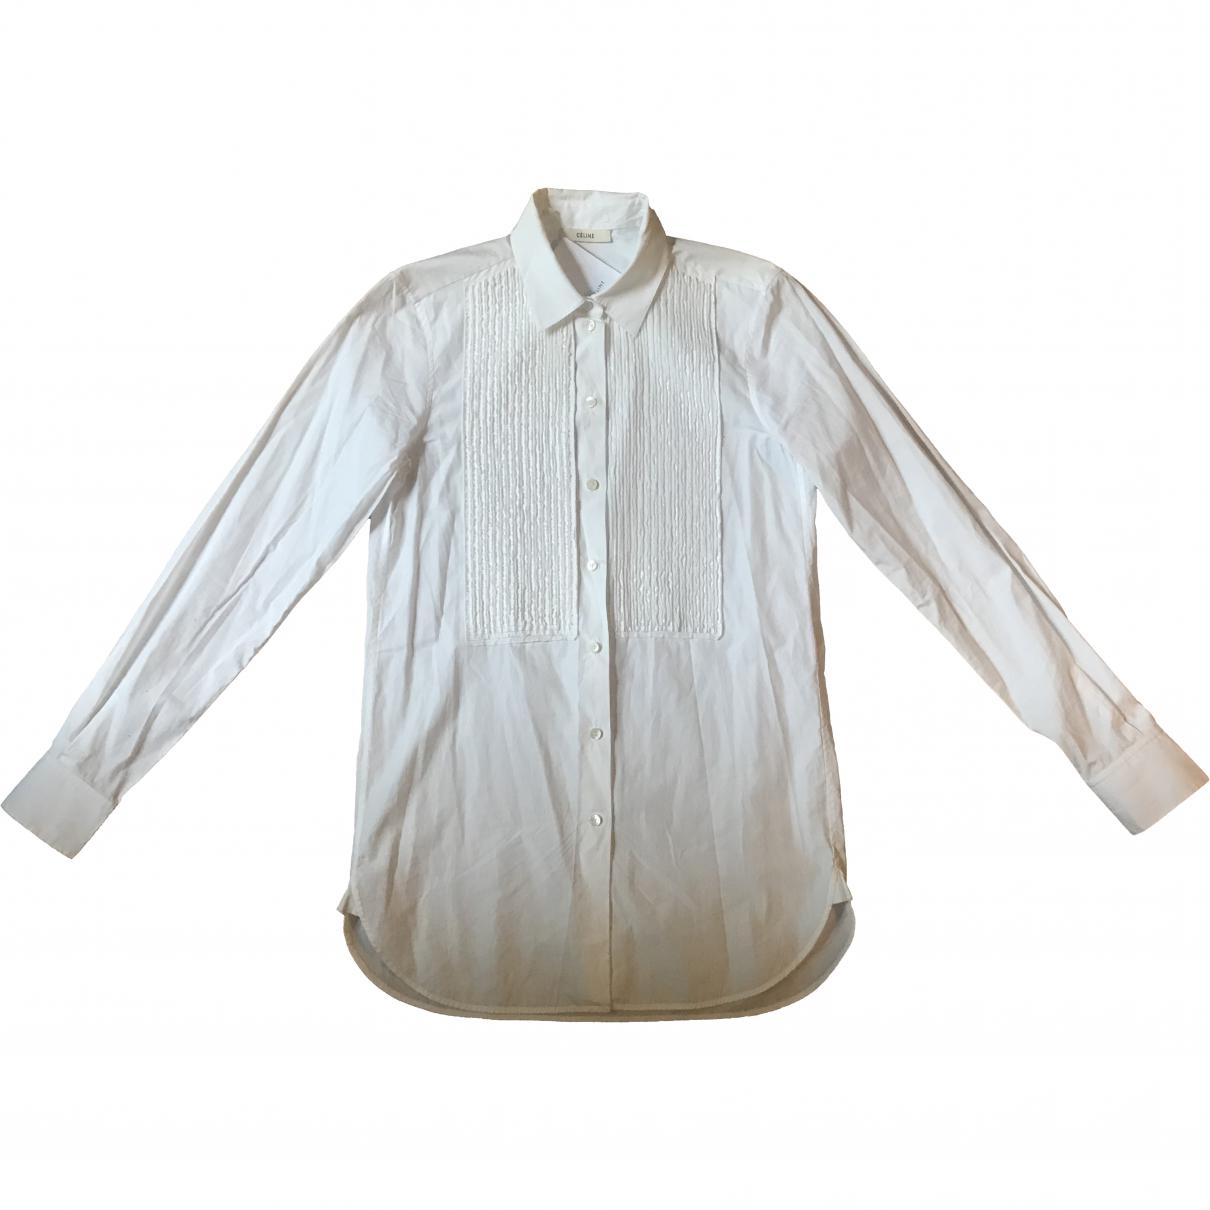 00bb7eb0af5 Lyst - Céline Pre-owned Shirt in White for Men